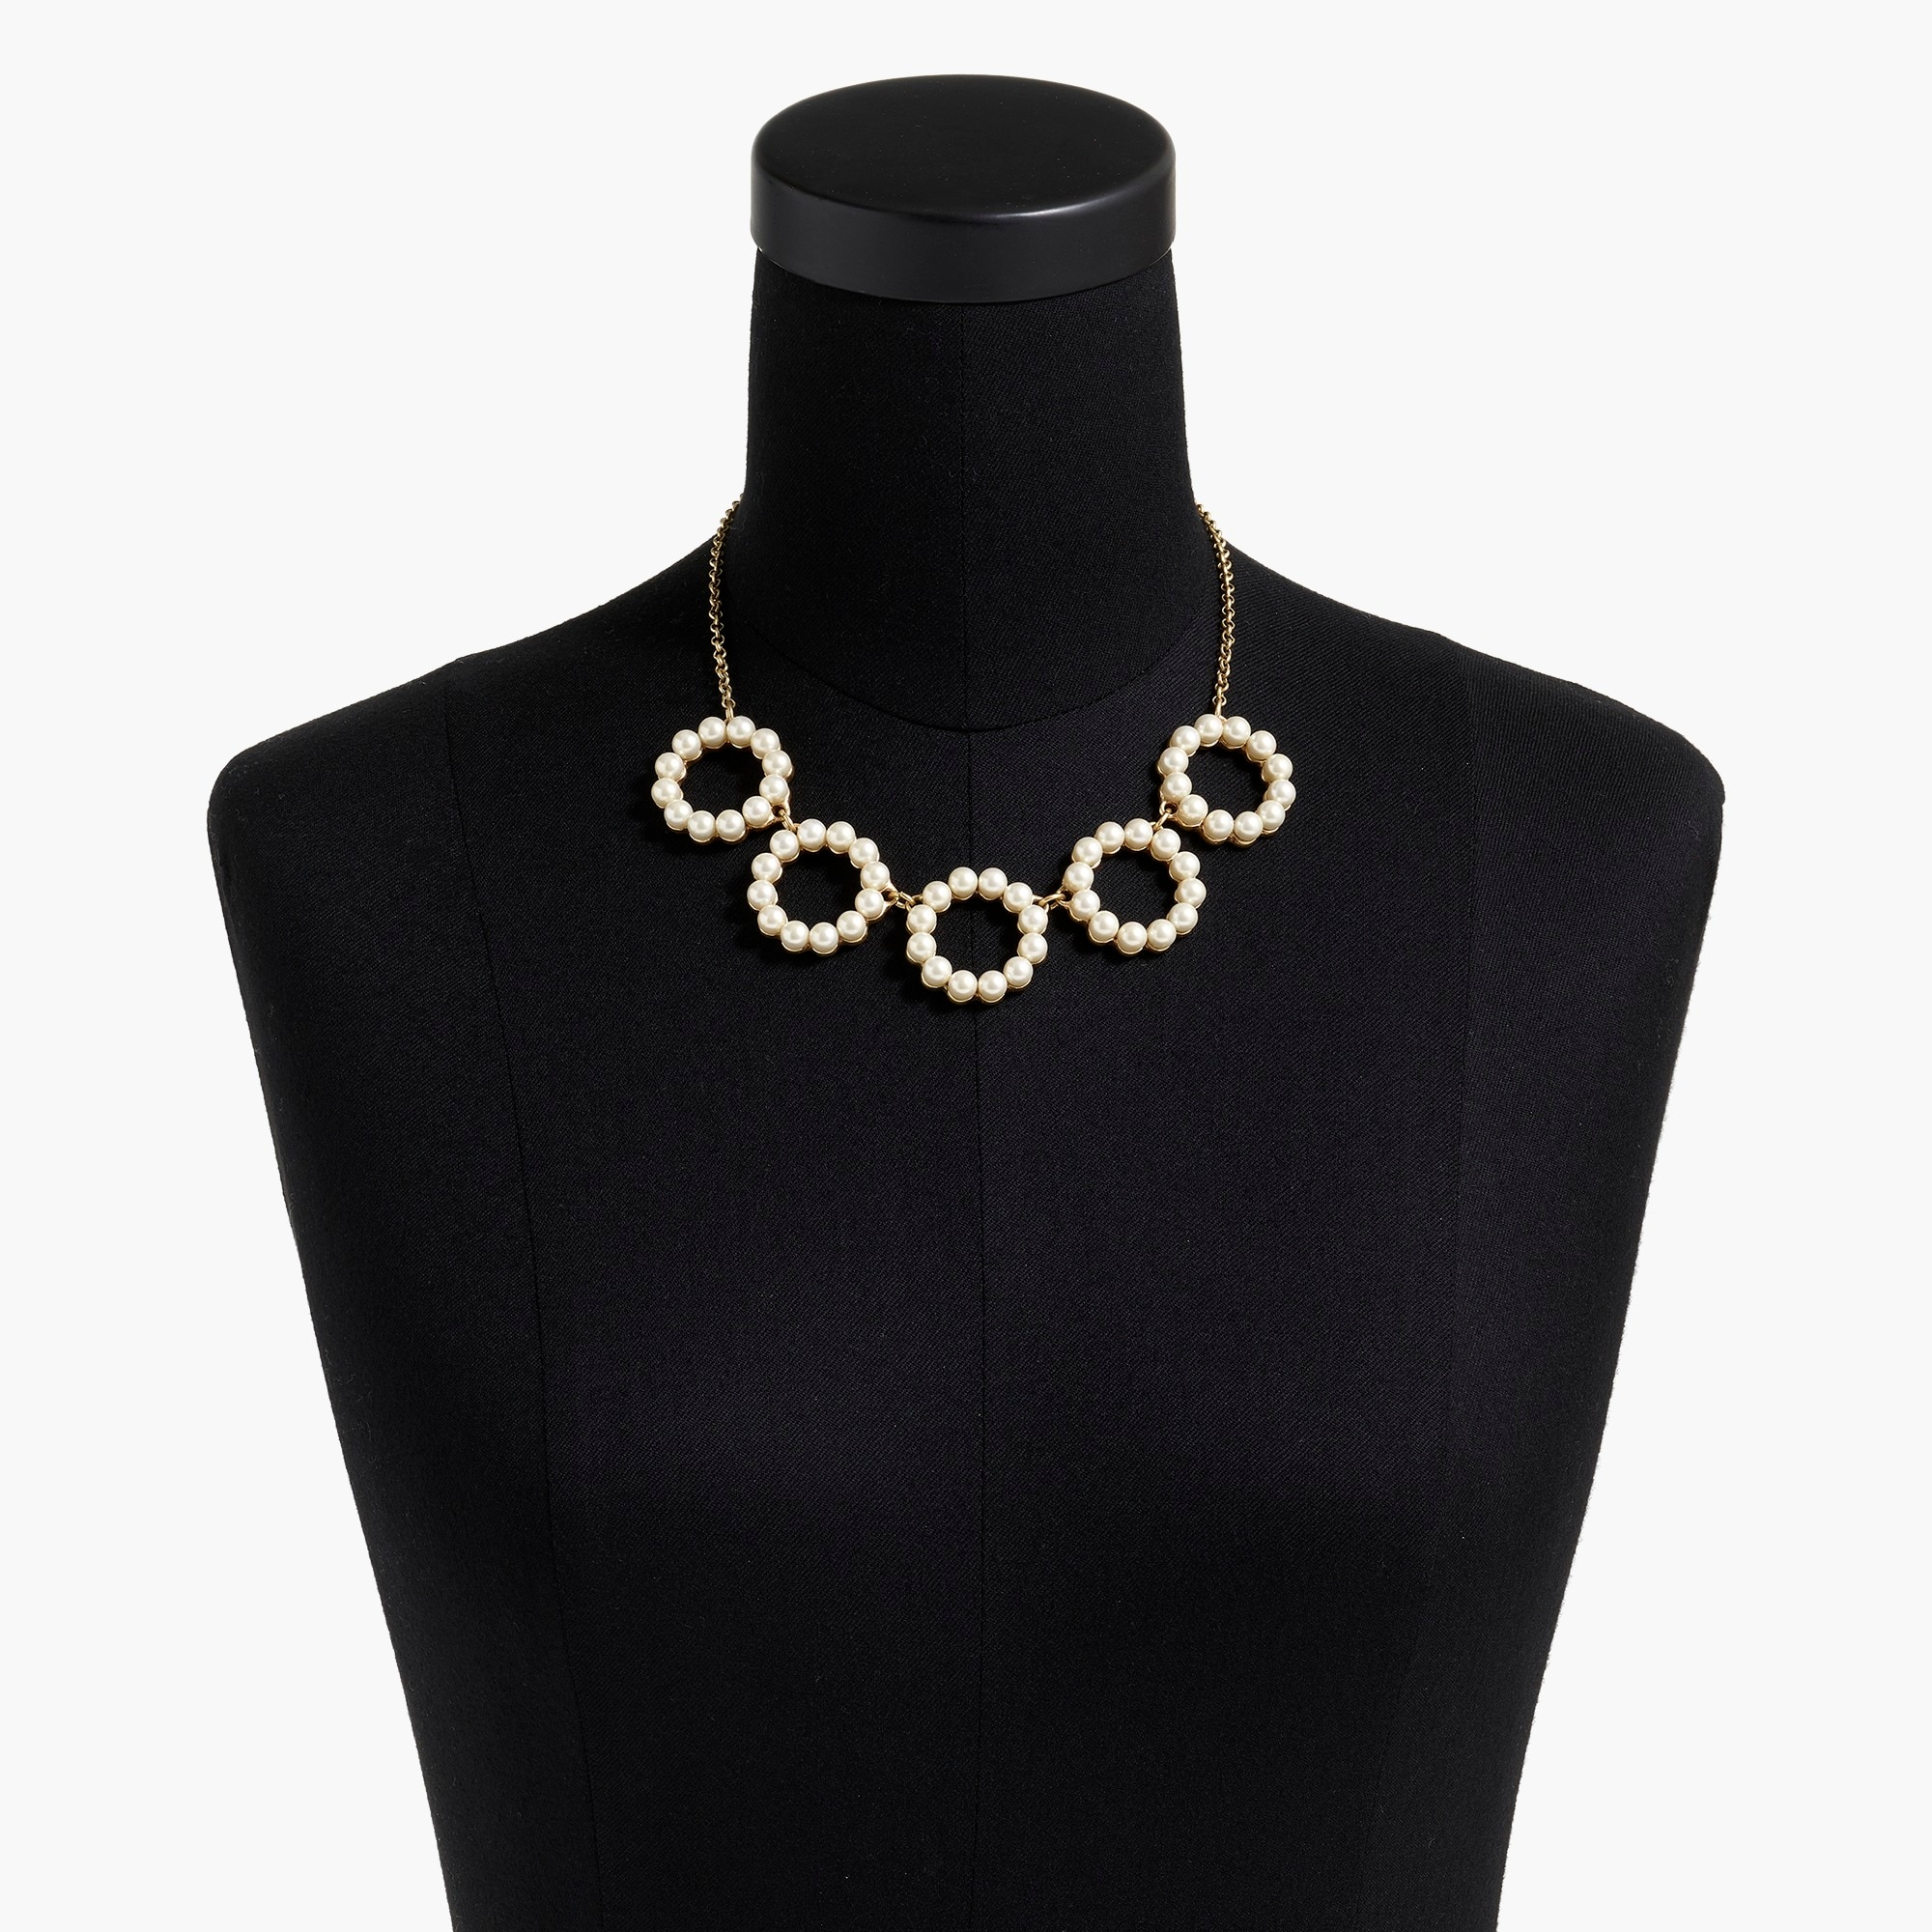 pearl circles statement necklace : factorywomen necklaces